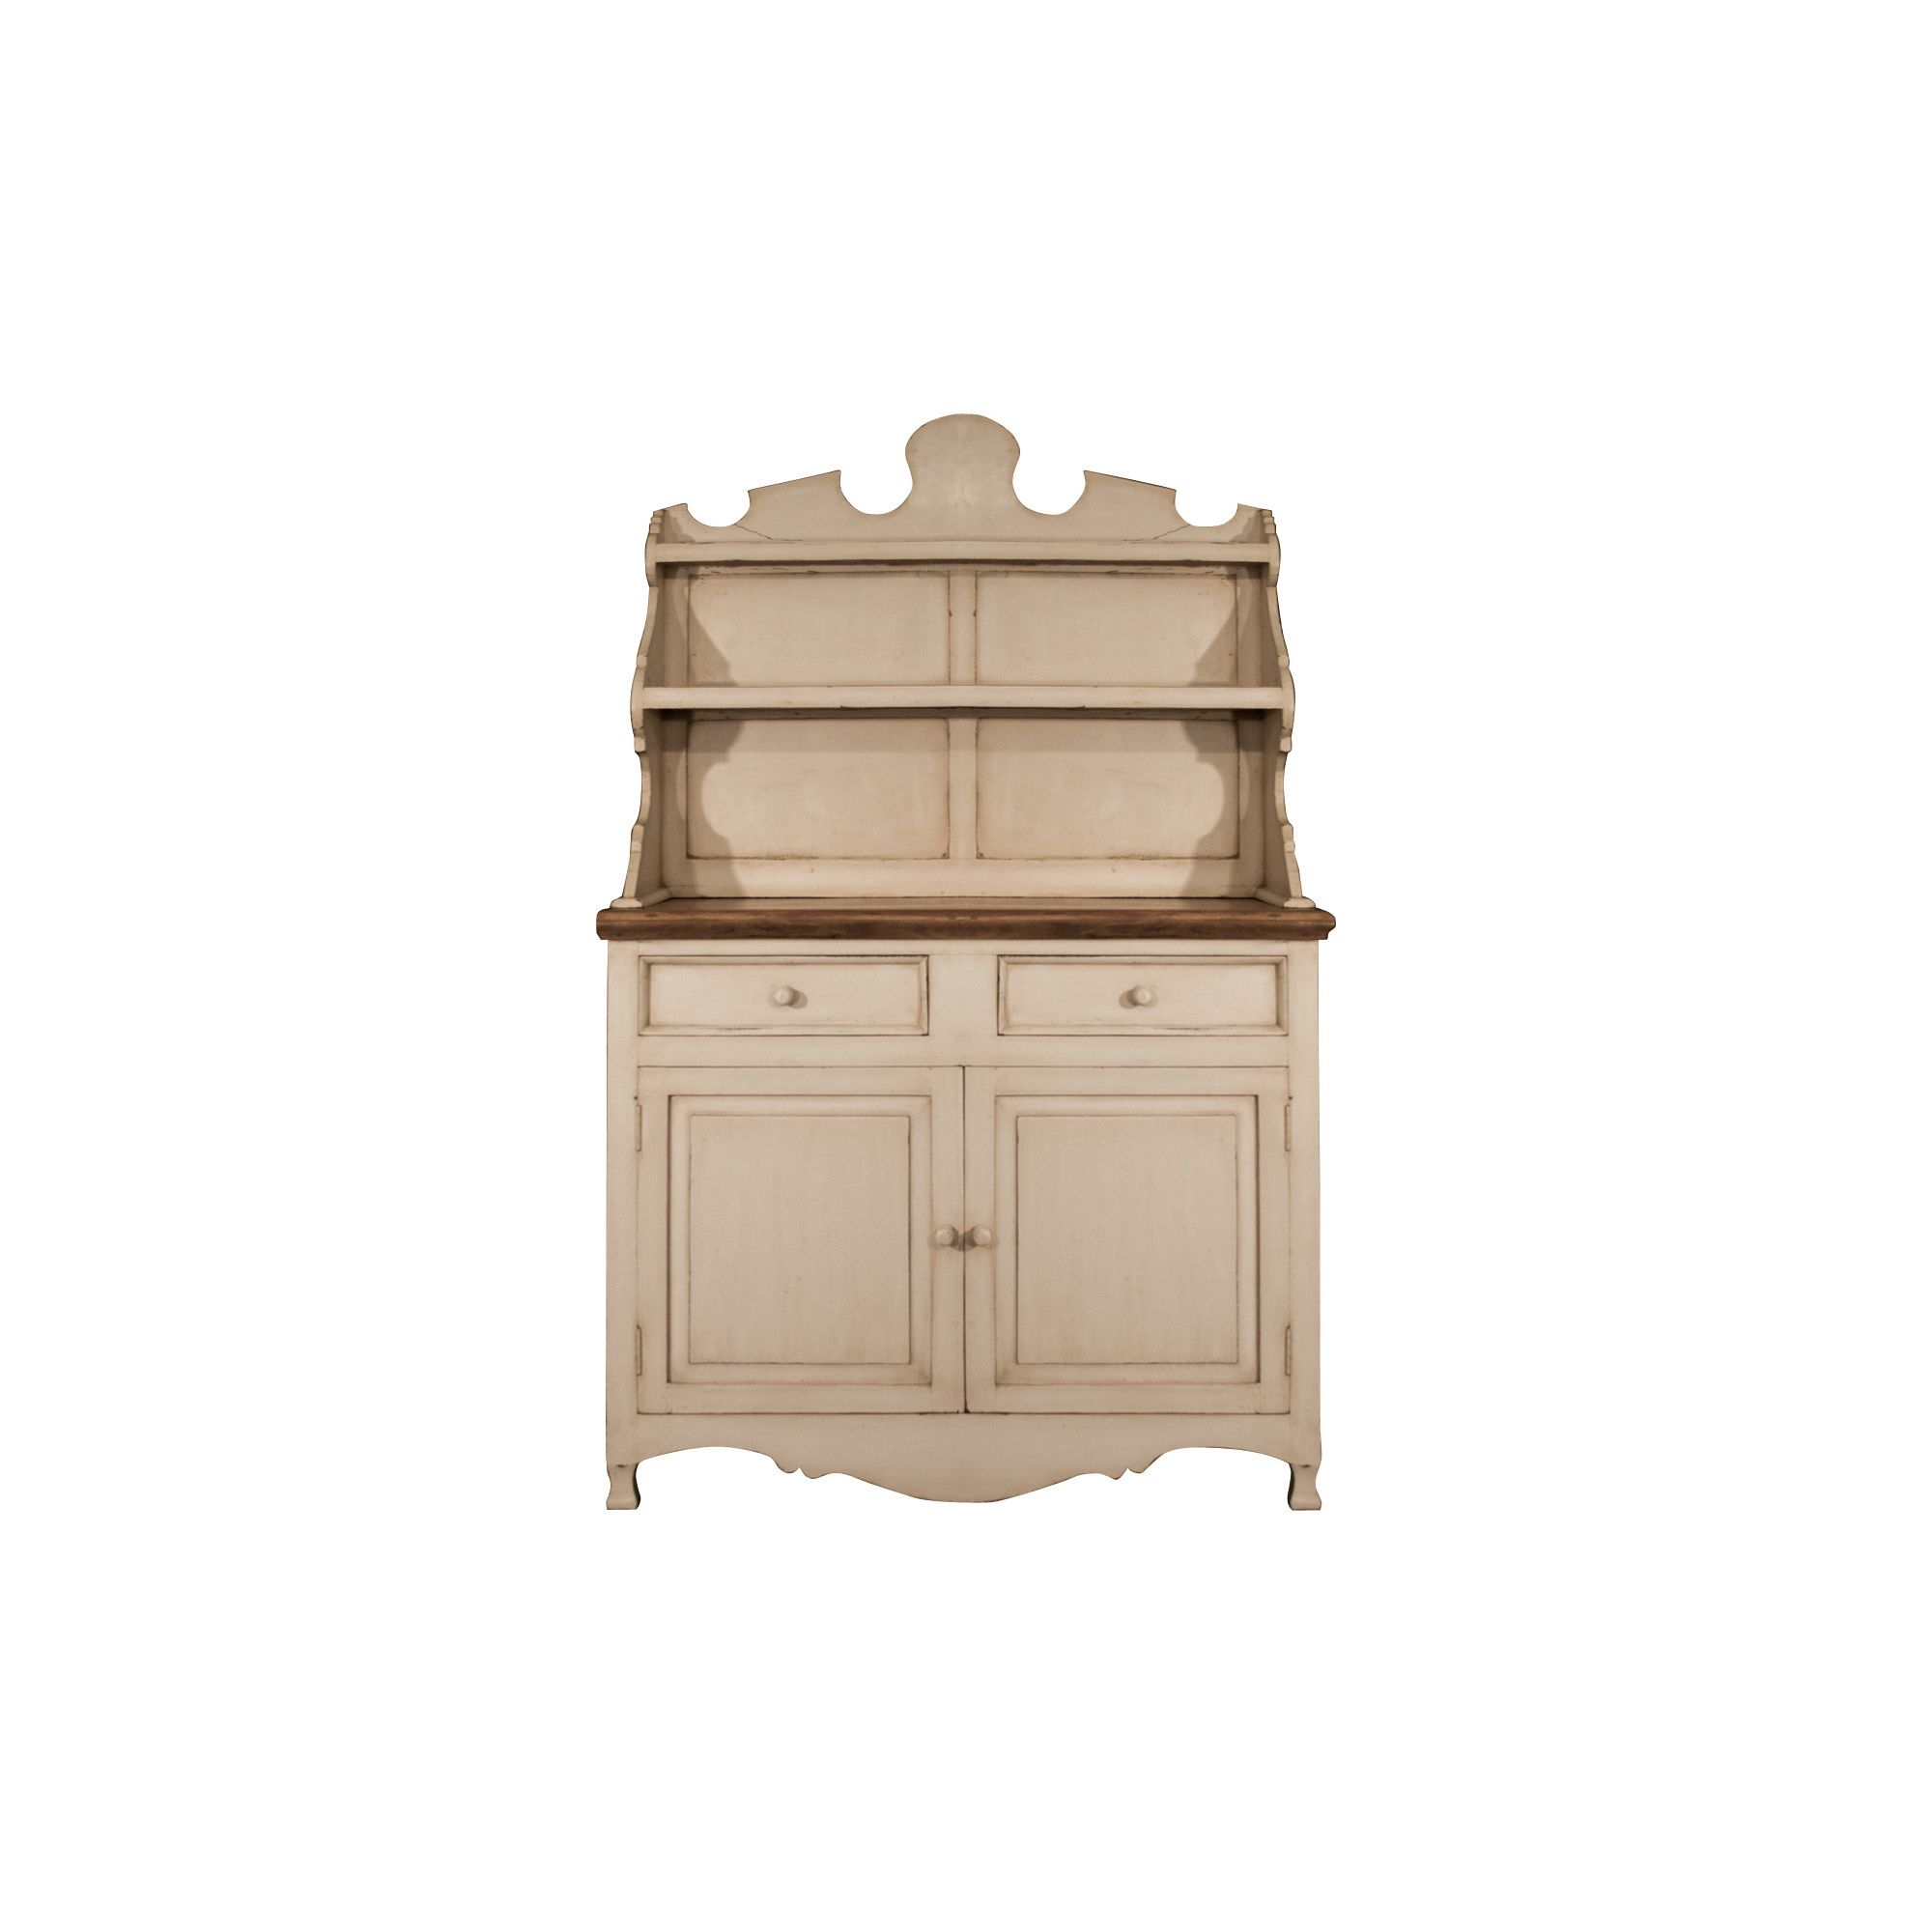 Alterton Furniture Provence Open Sideboard at Tesco Direct